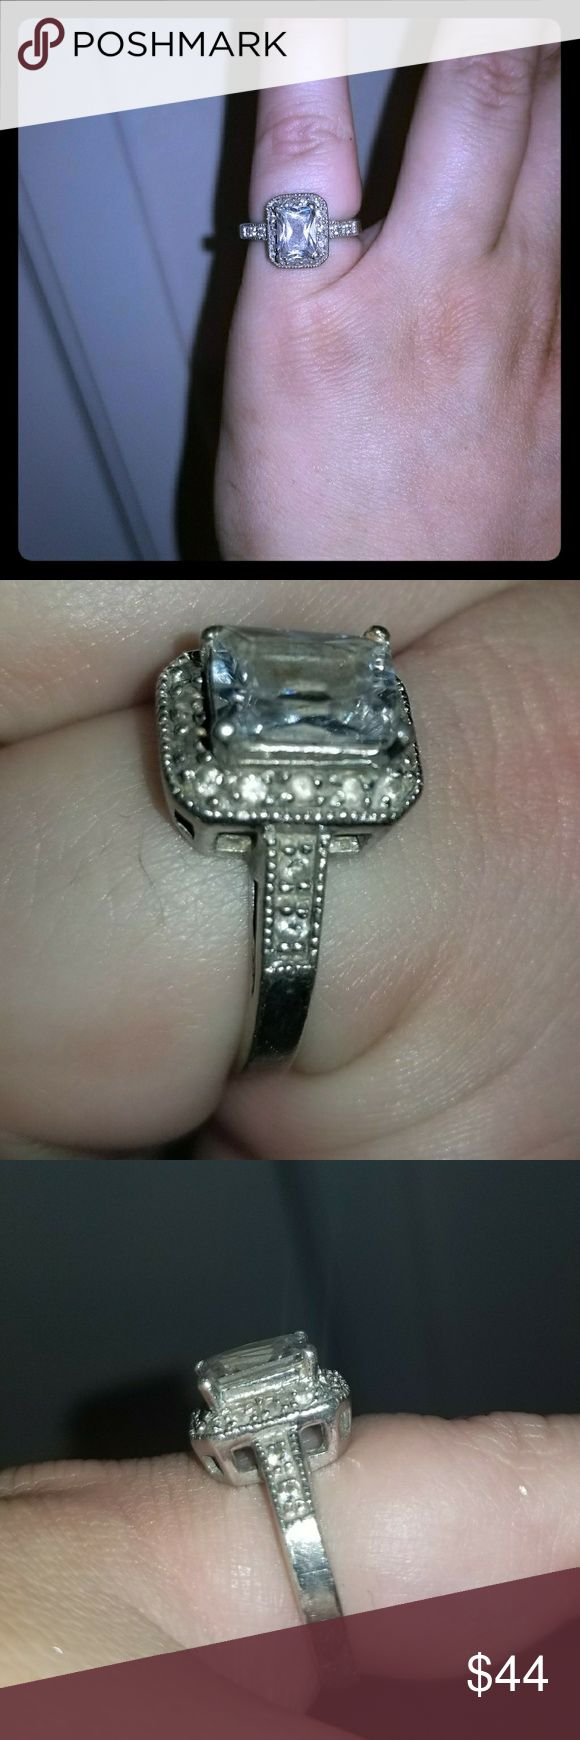 💍Gorgeous 925 Silver Dimond Ring💍 Size 7 woman's diamond ring. Could use a nice cleaning.  Marked ATT China 925.    Bundle 2 or more items & Save 15%  Fast shipper / Top rated seller / Posh Ambassador 💪🌻❤ Pretty~Vibe~Finds Ann Taylor Jewelry Rings